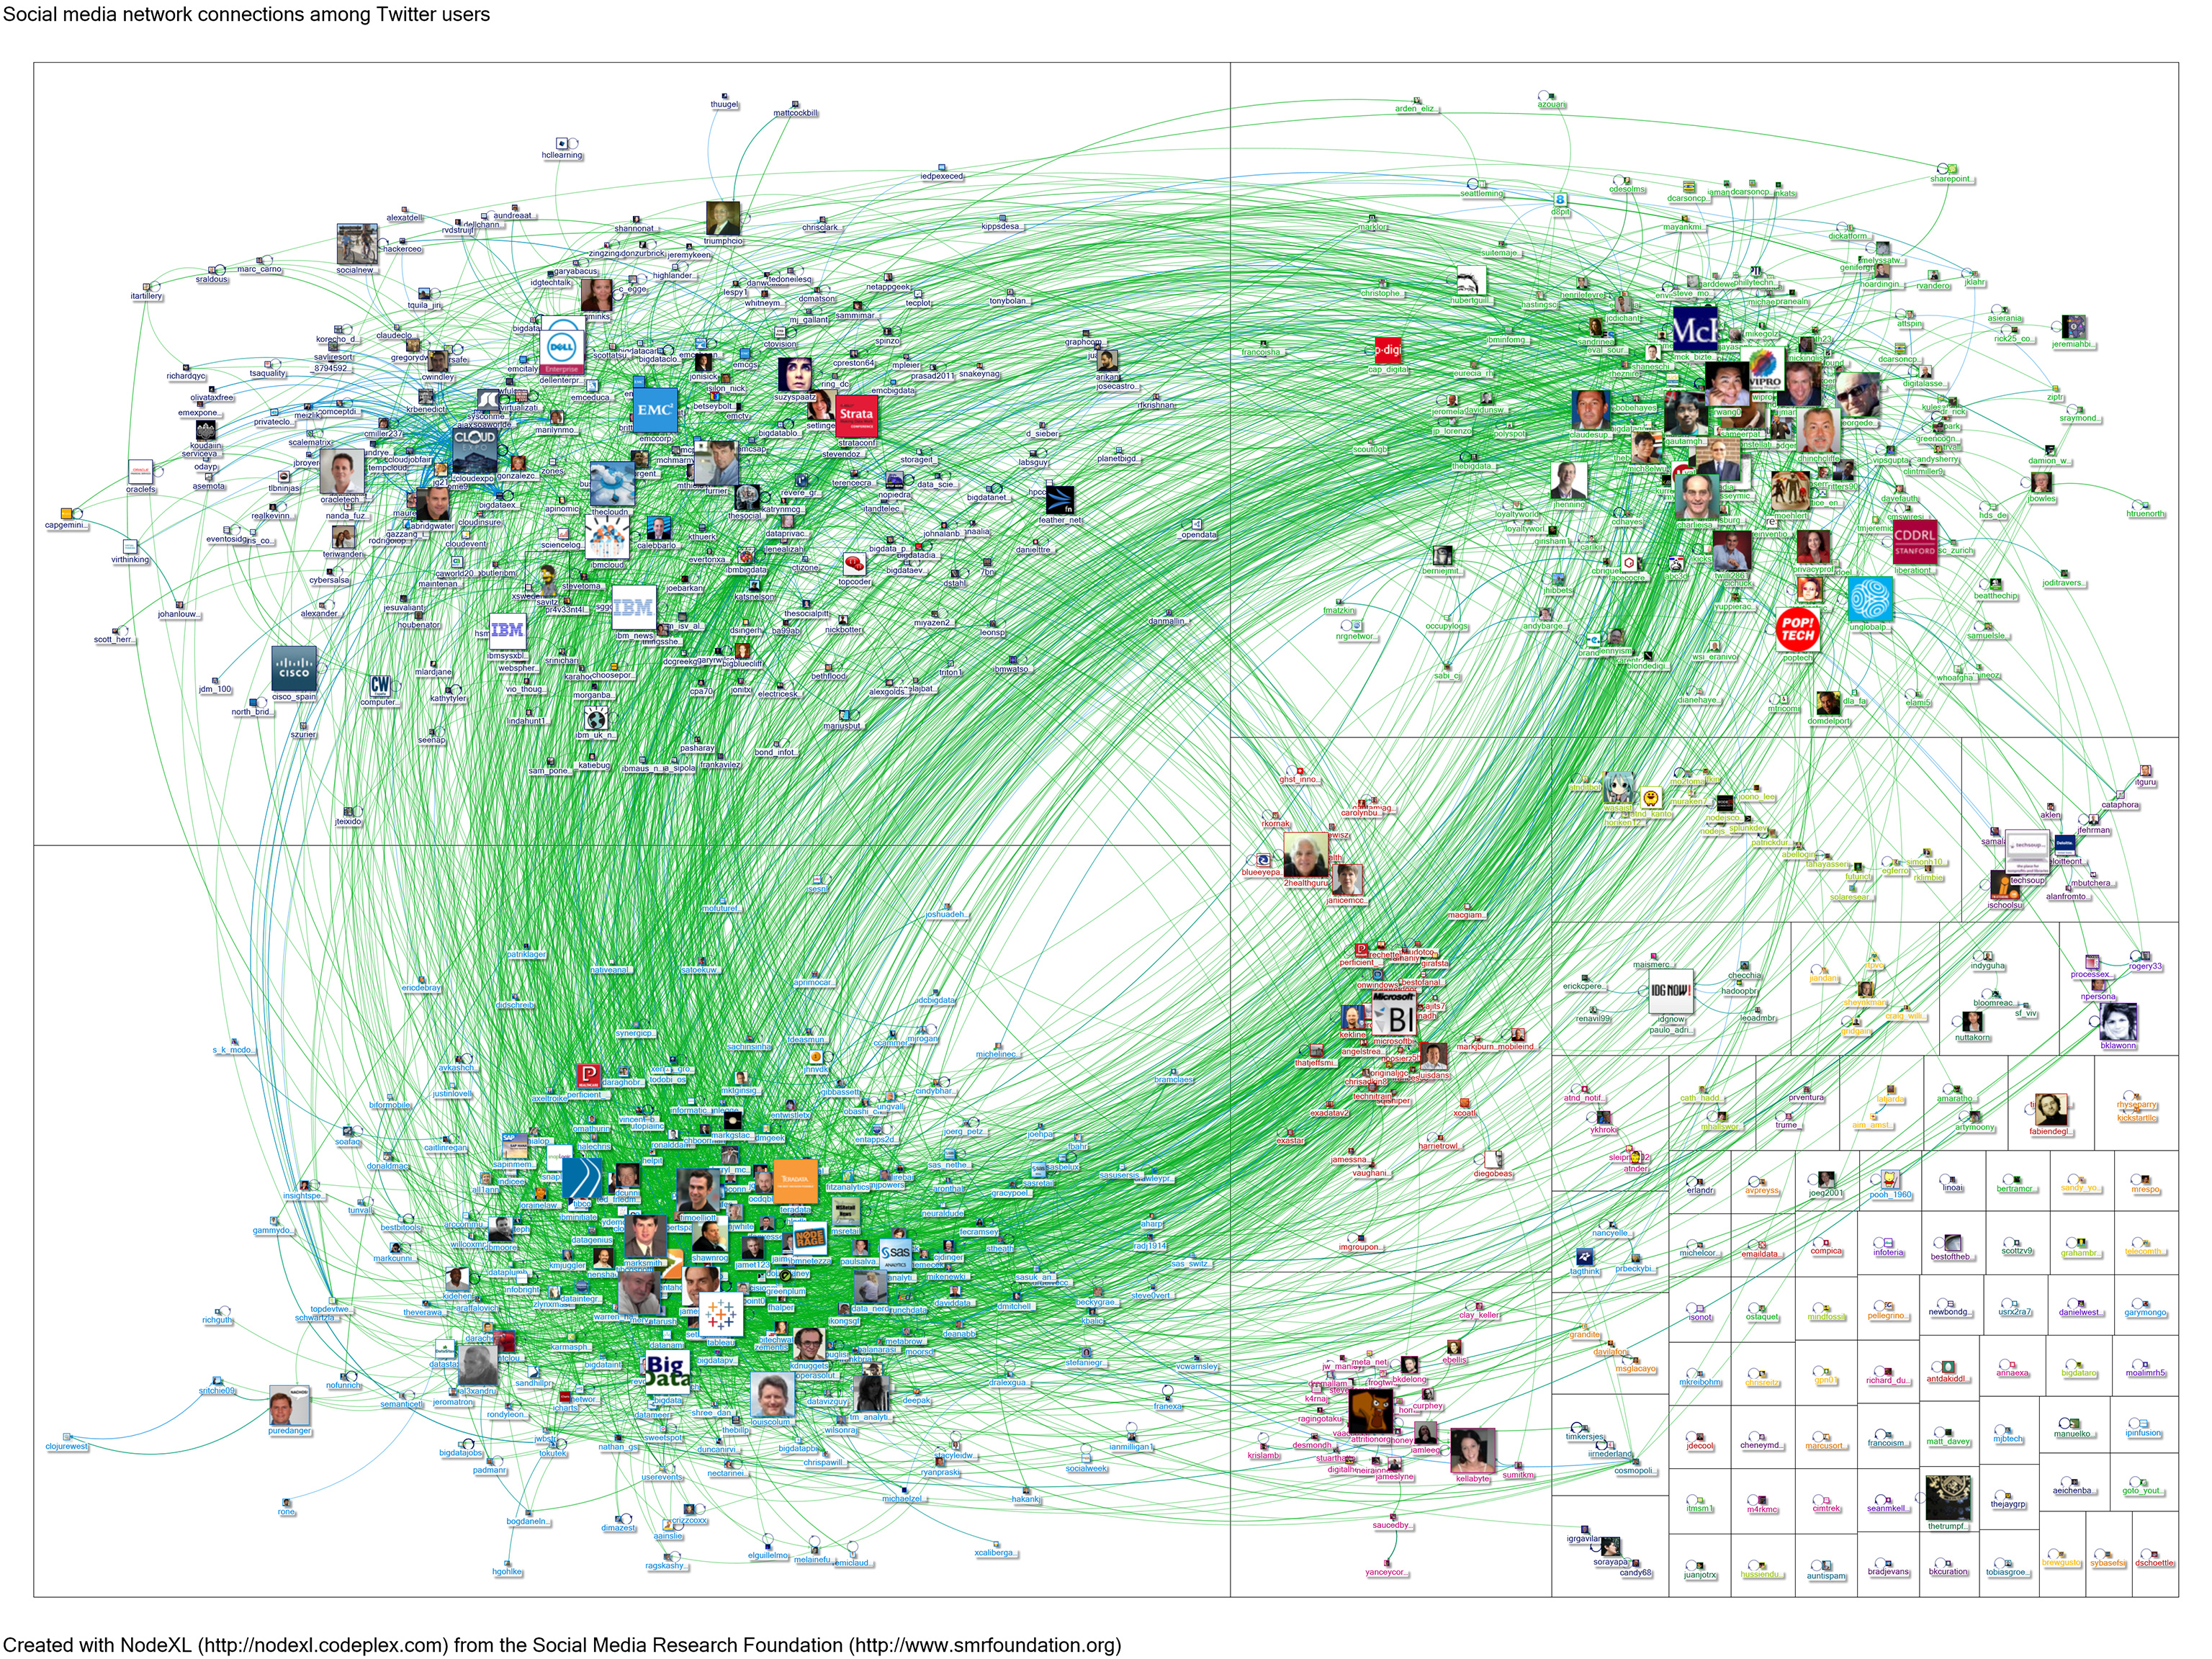 Twitter users' avatars connected via green lines form several groups